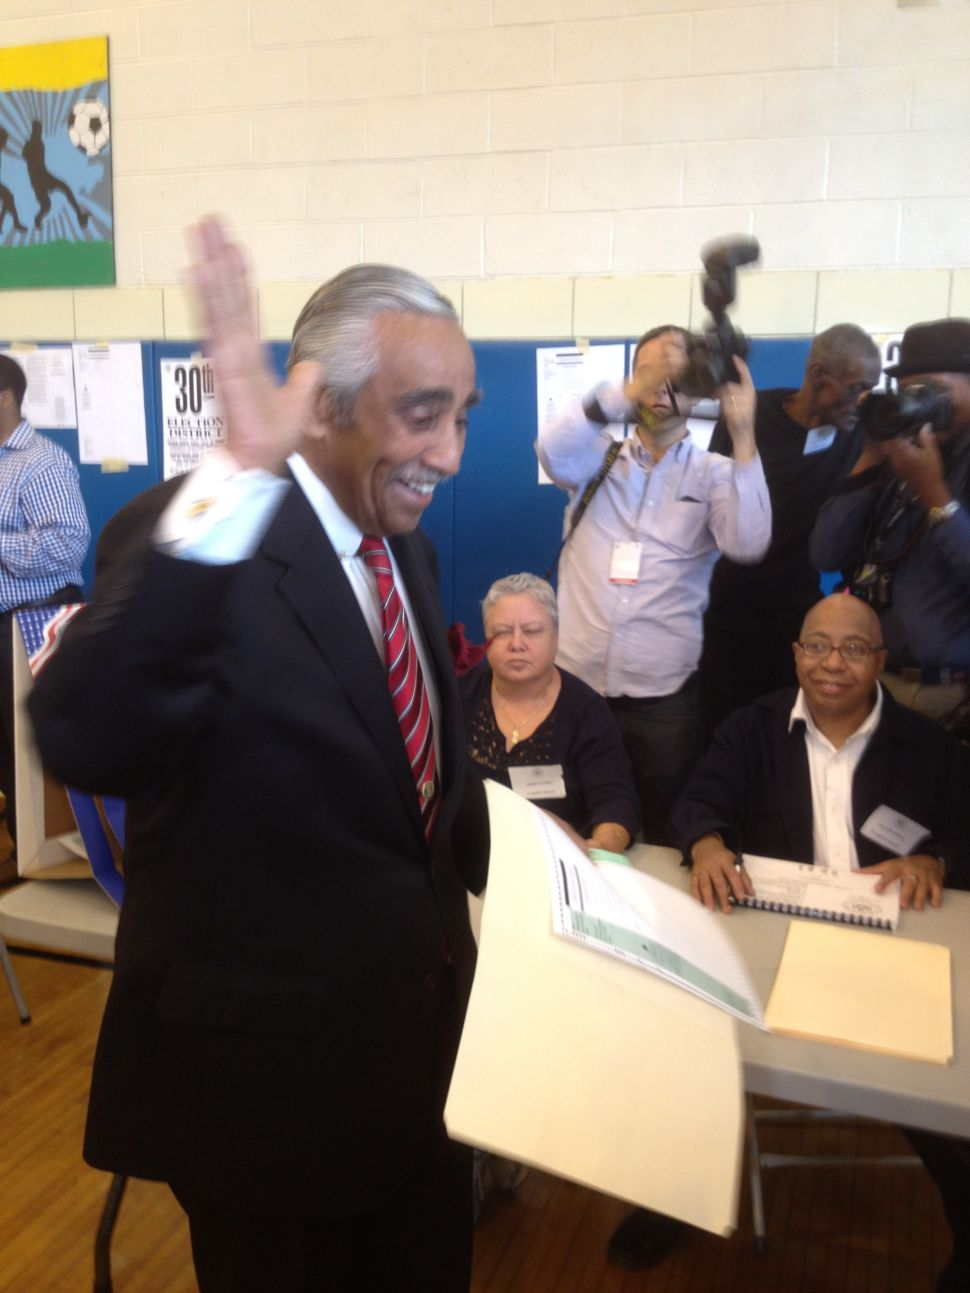 Charlie Rangel Says The Thought Of Losing An Election 'Never Reaches That Mental Level' For Him